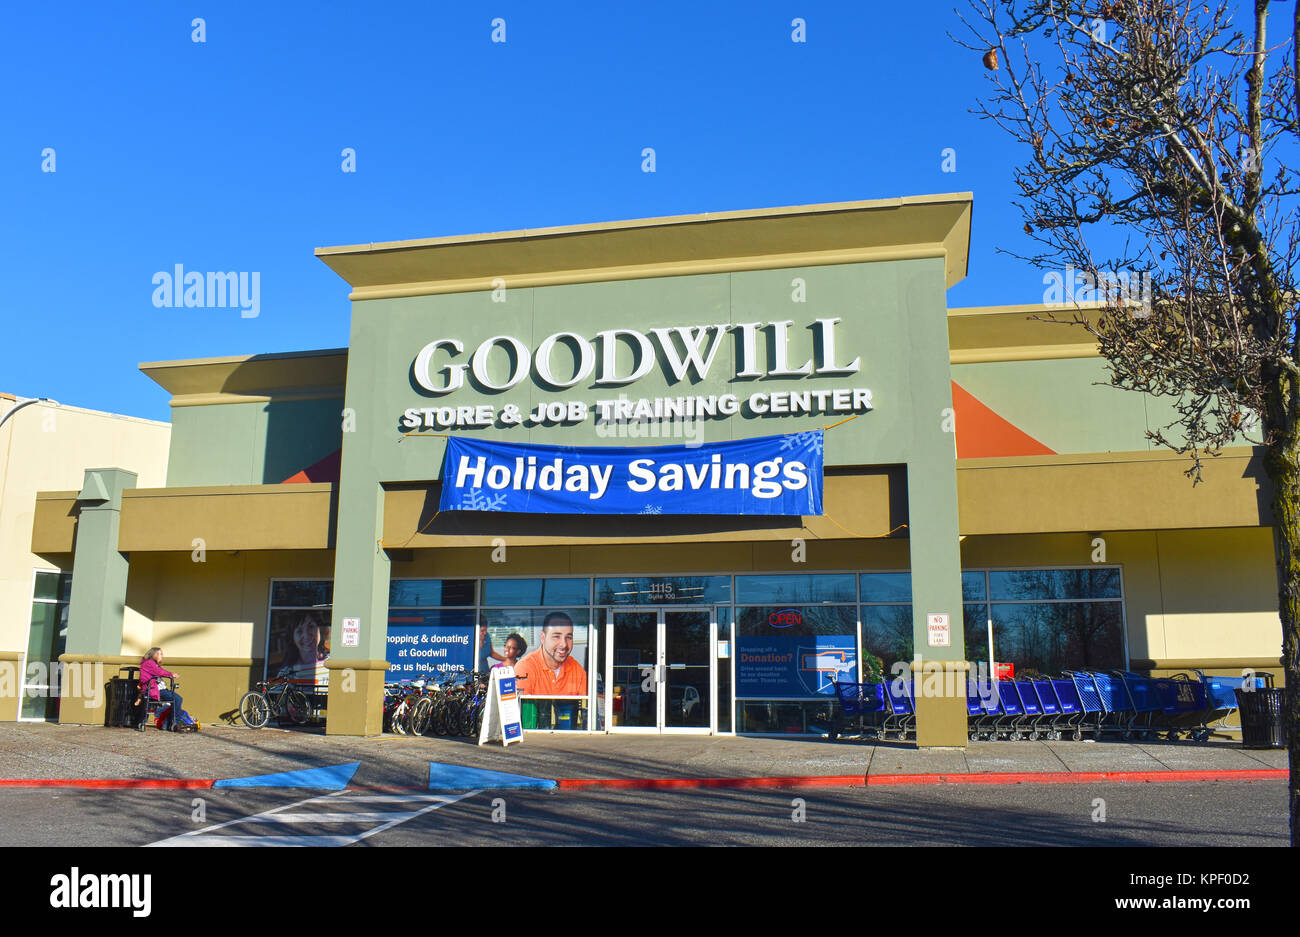 Goodwill store and job training center in Bellingham, WA, USA. - Stock Image